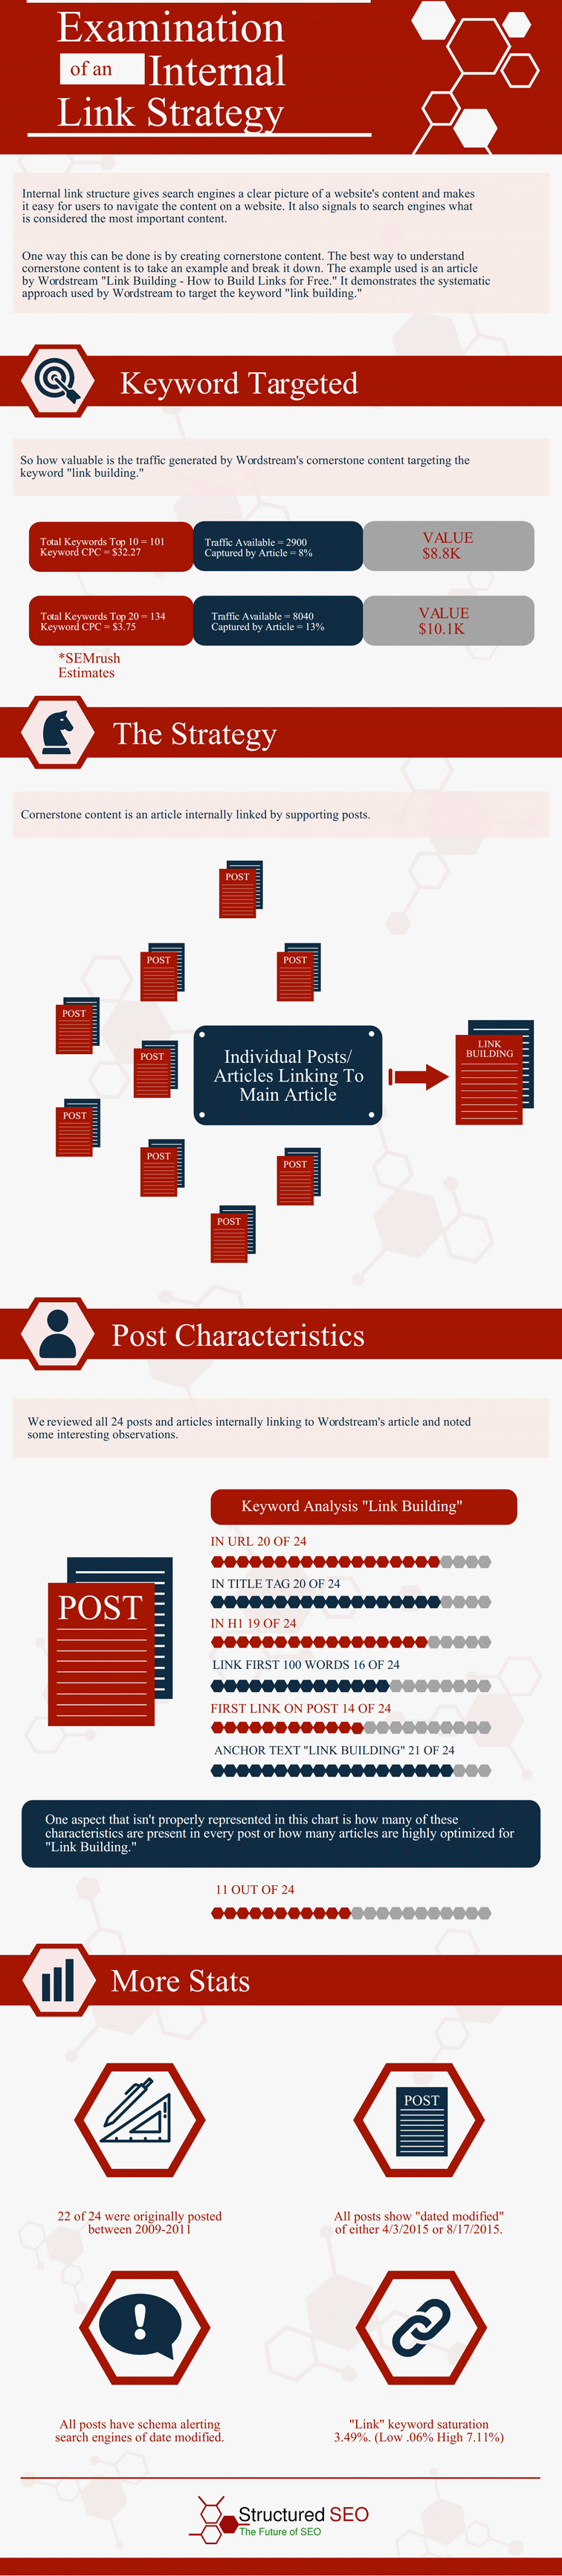 Examination of an Internal Link Strategy